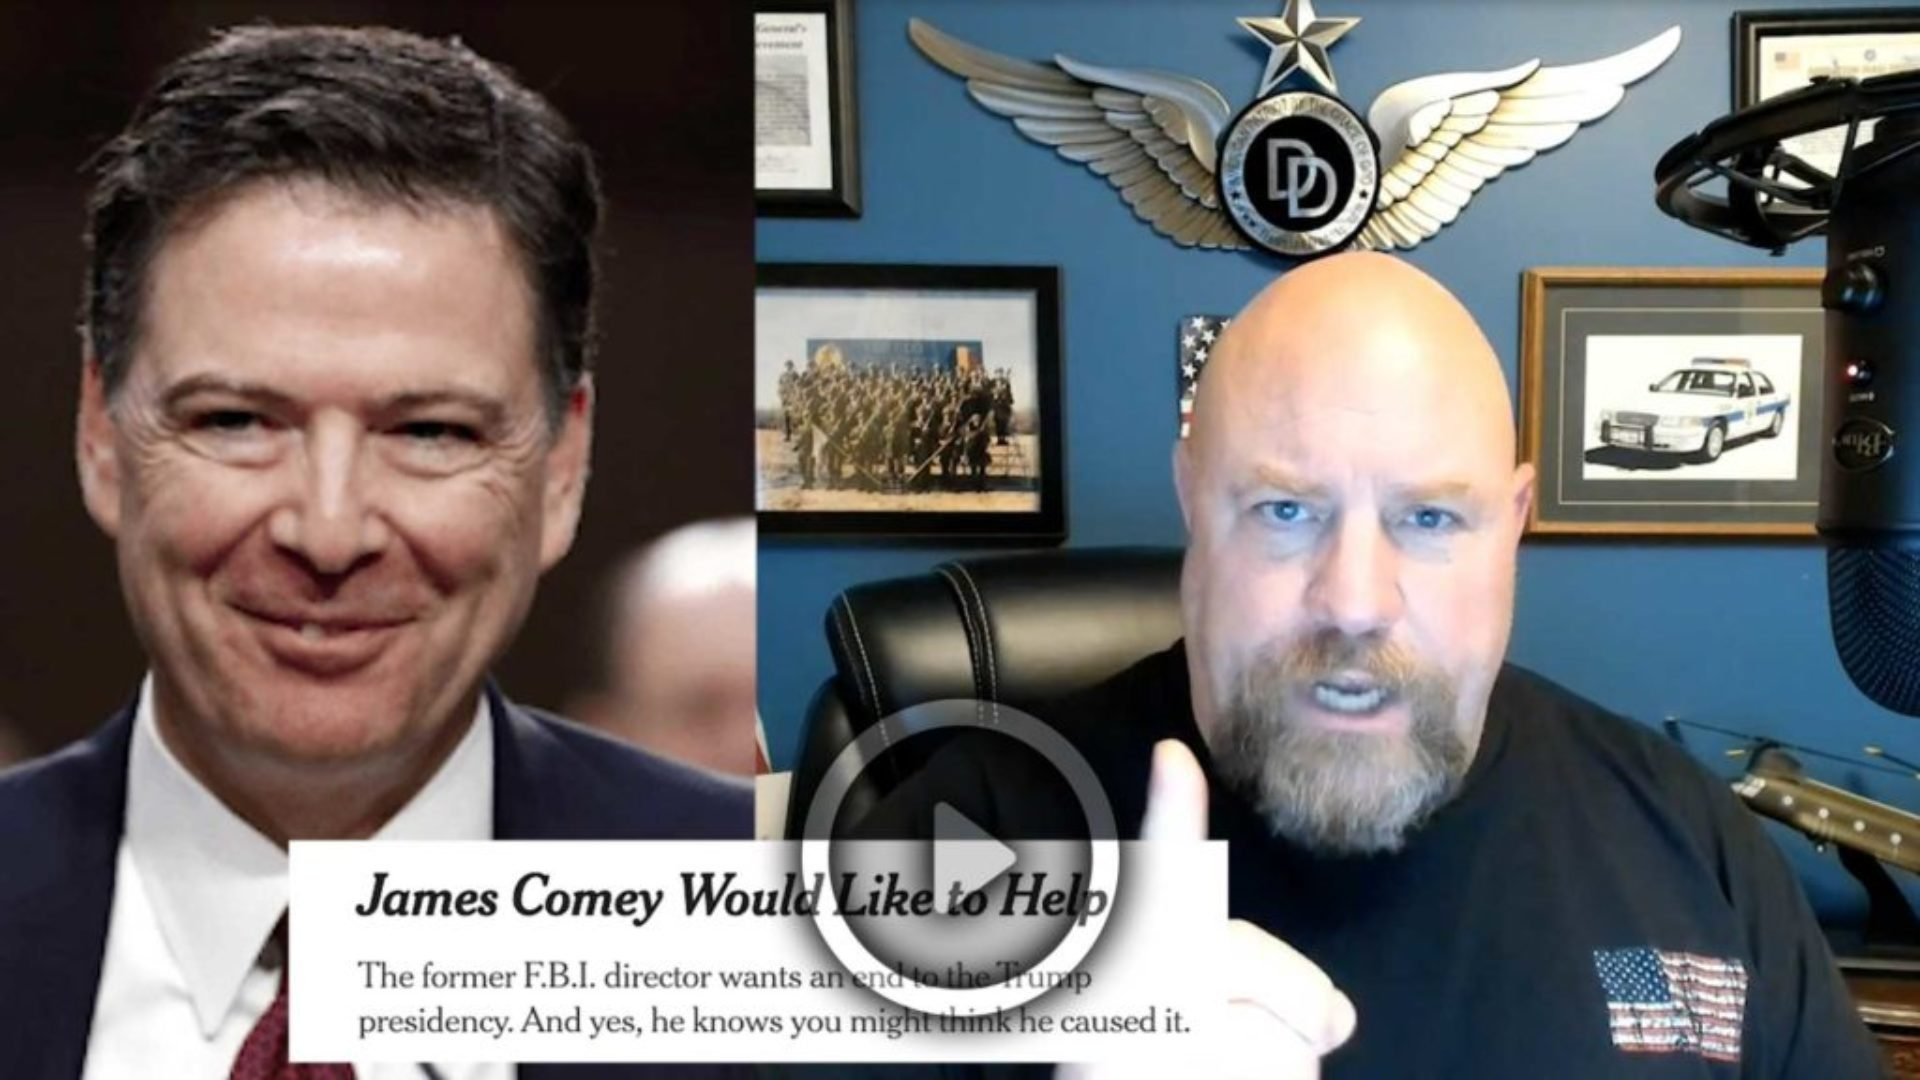 Crooked-James-Comey-Raking-In-Millions-2